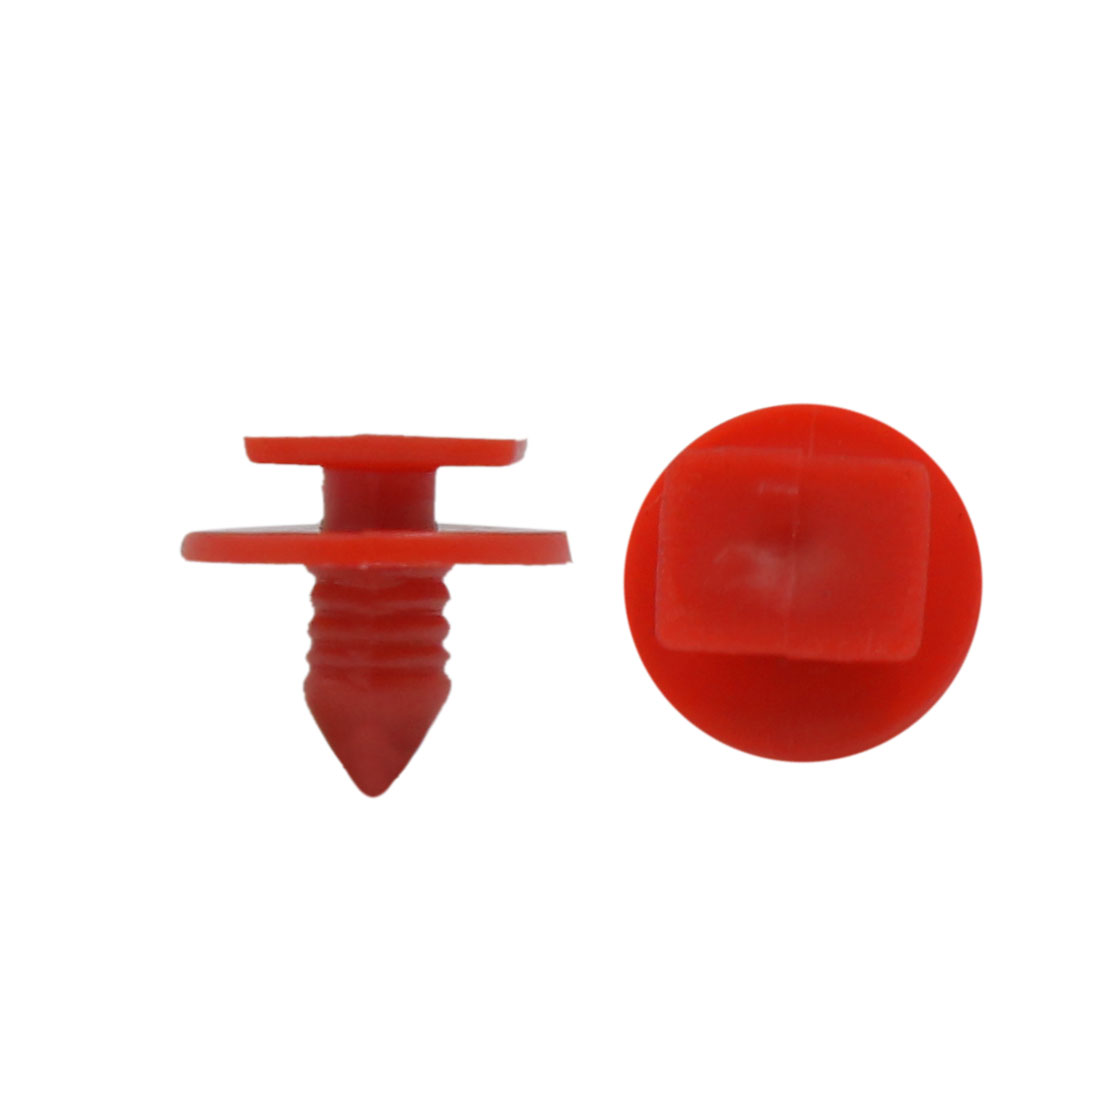 30 Pcs Red 6mm Dia Hole Plastic Push-Type Bumper Retainer Rivet Clips for Car